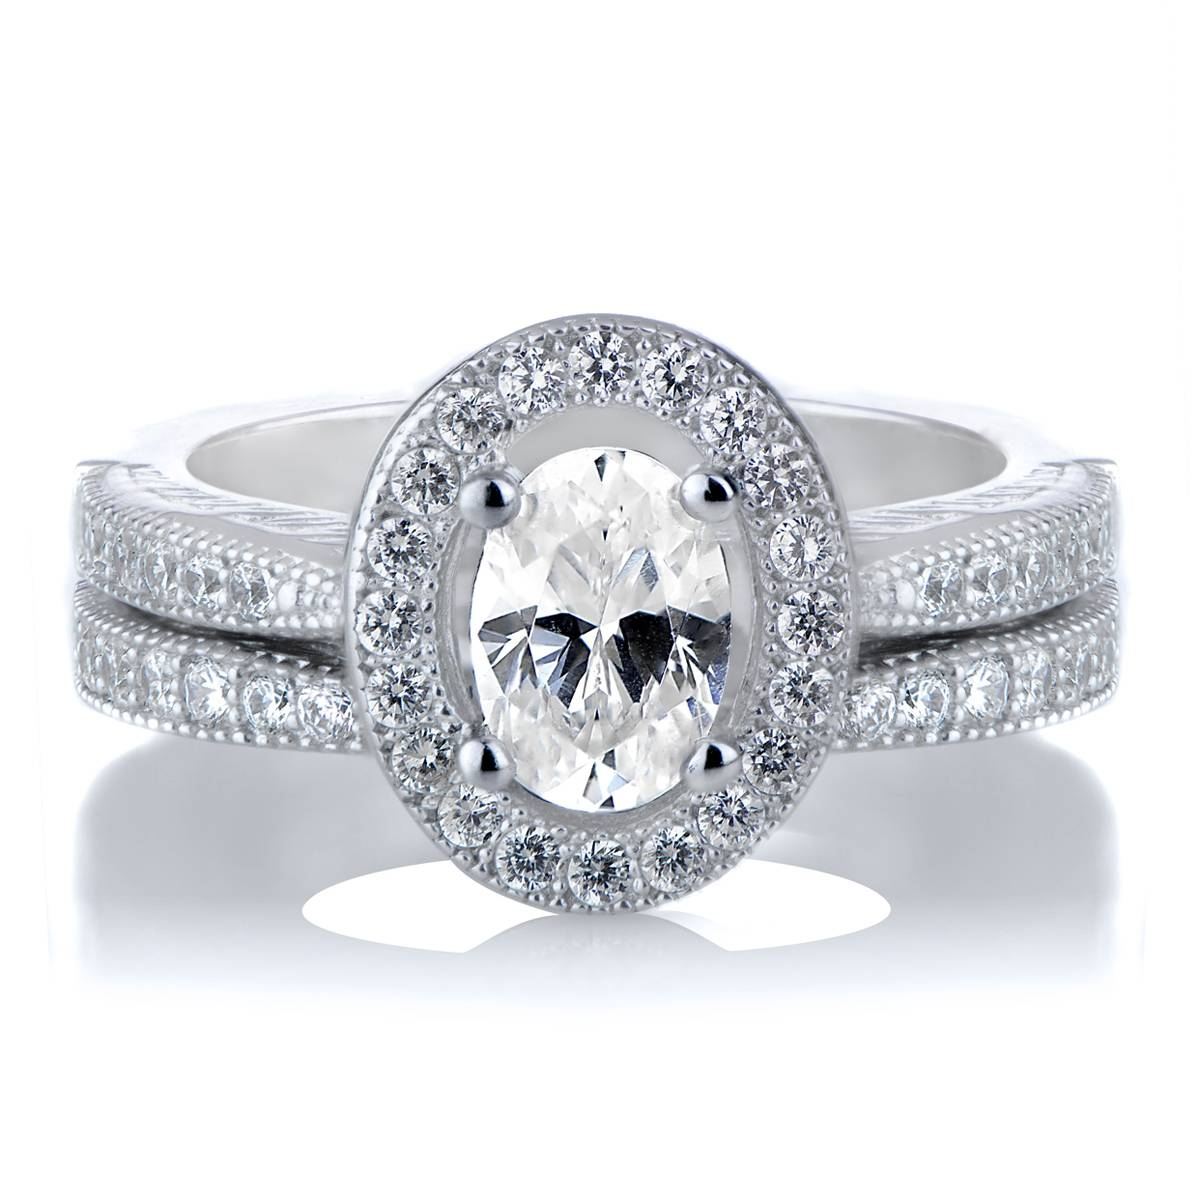 Kiara's Oval Cut Cz Halo Wedding Ring Set In Oval Wedding Rings Sets (Gallery 5 of 15)